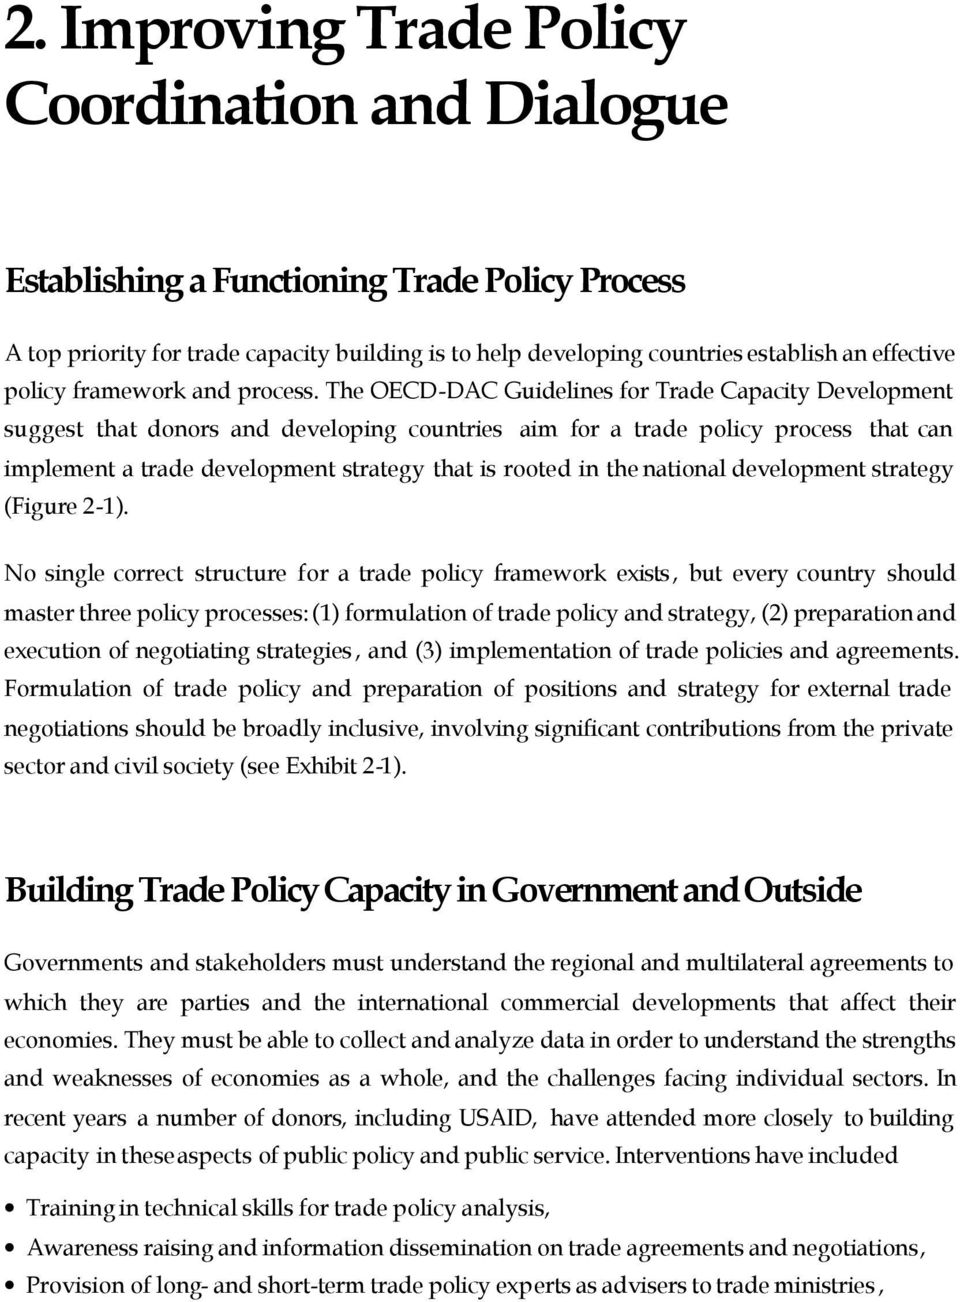 The OECD-DAC Guidelines for Trade Capacity Development suggest that donors and developing countries aim for a trade policy process that can implement a trade development strategy that is rooted in